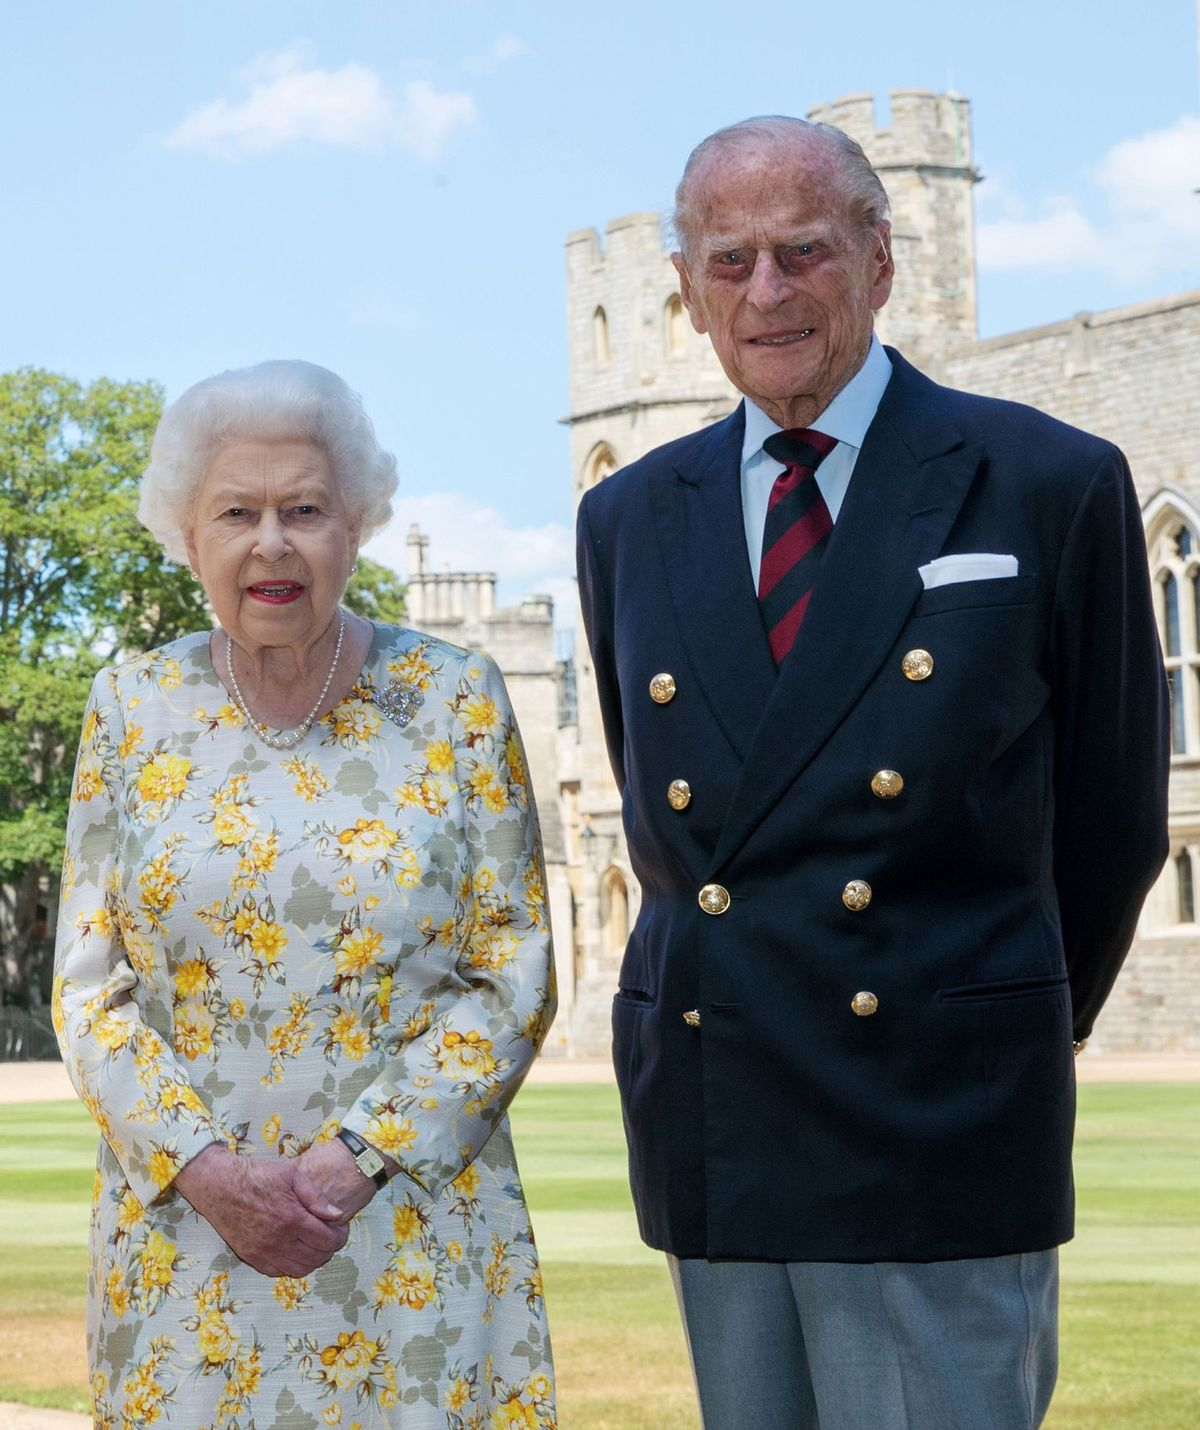 Queen Elizabeth II and Prince Philip pictured 1/6/2020 in the quadrangle of Windsor Castle ahead of his 99th birthday. | Getty Images